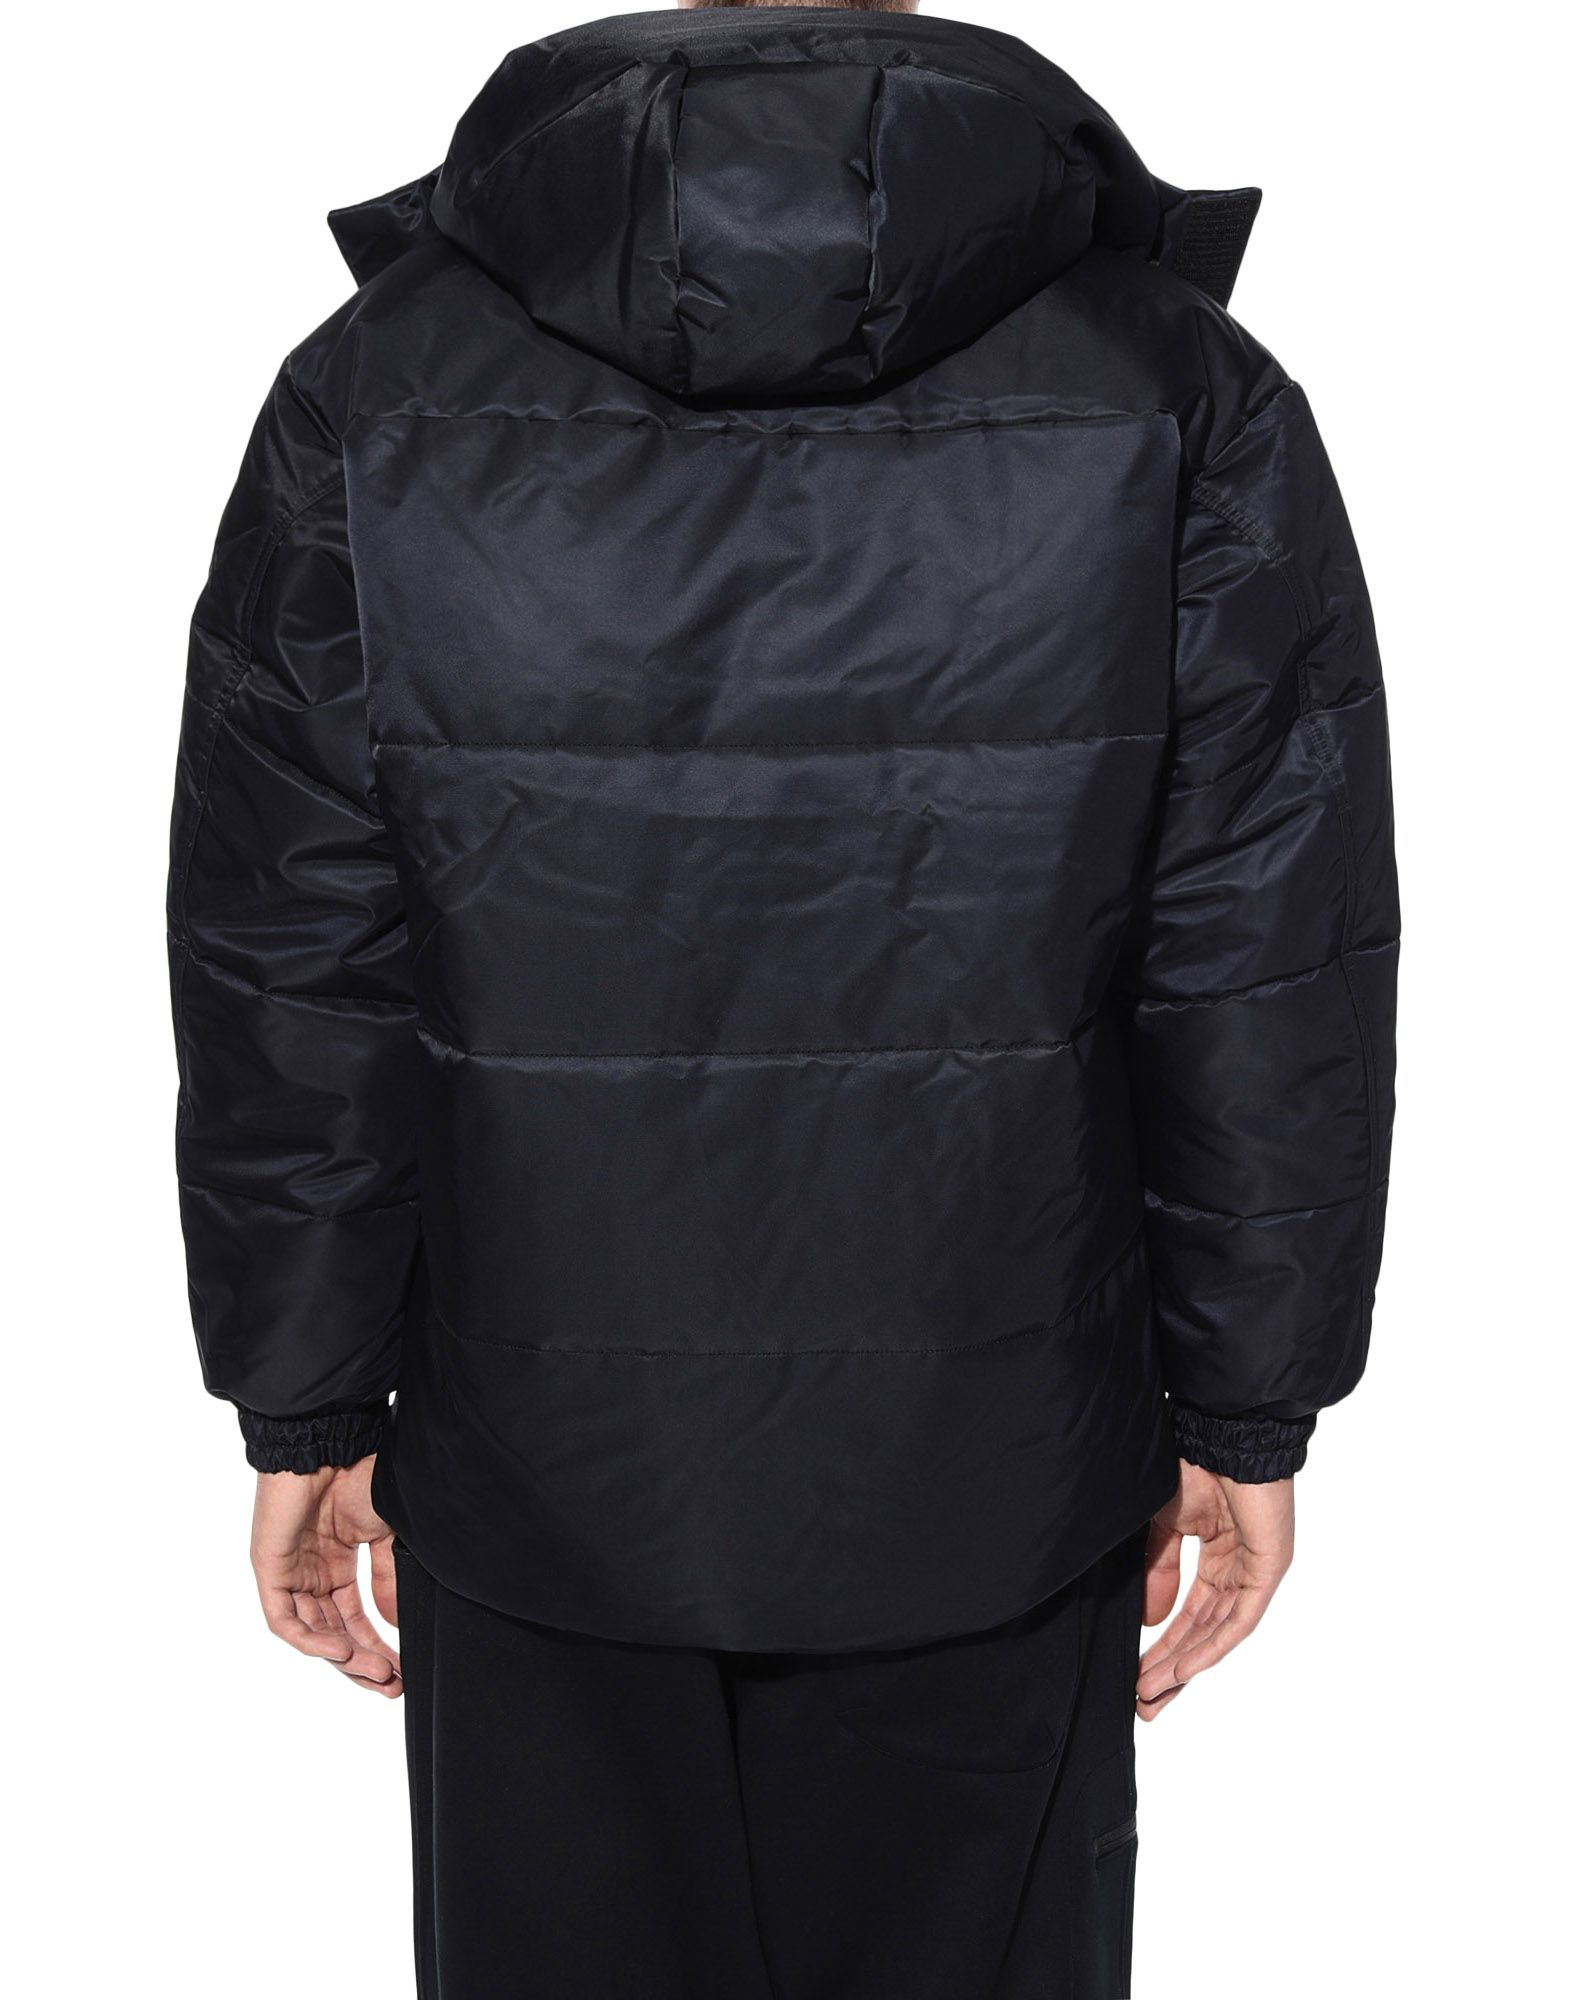 Y-3 Y-3 Padded Jacket Down jacket Man d